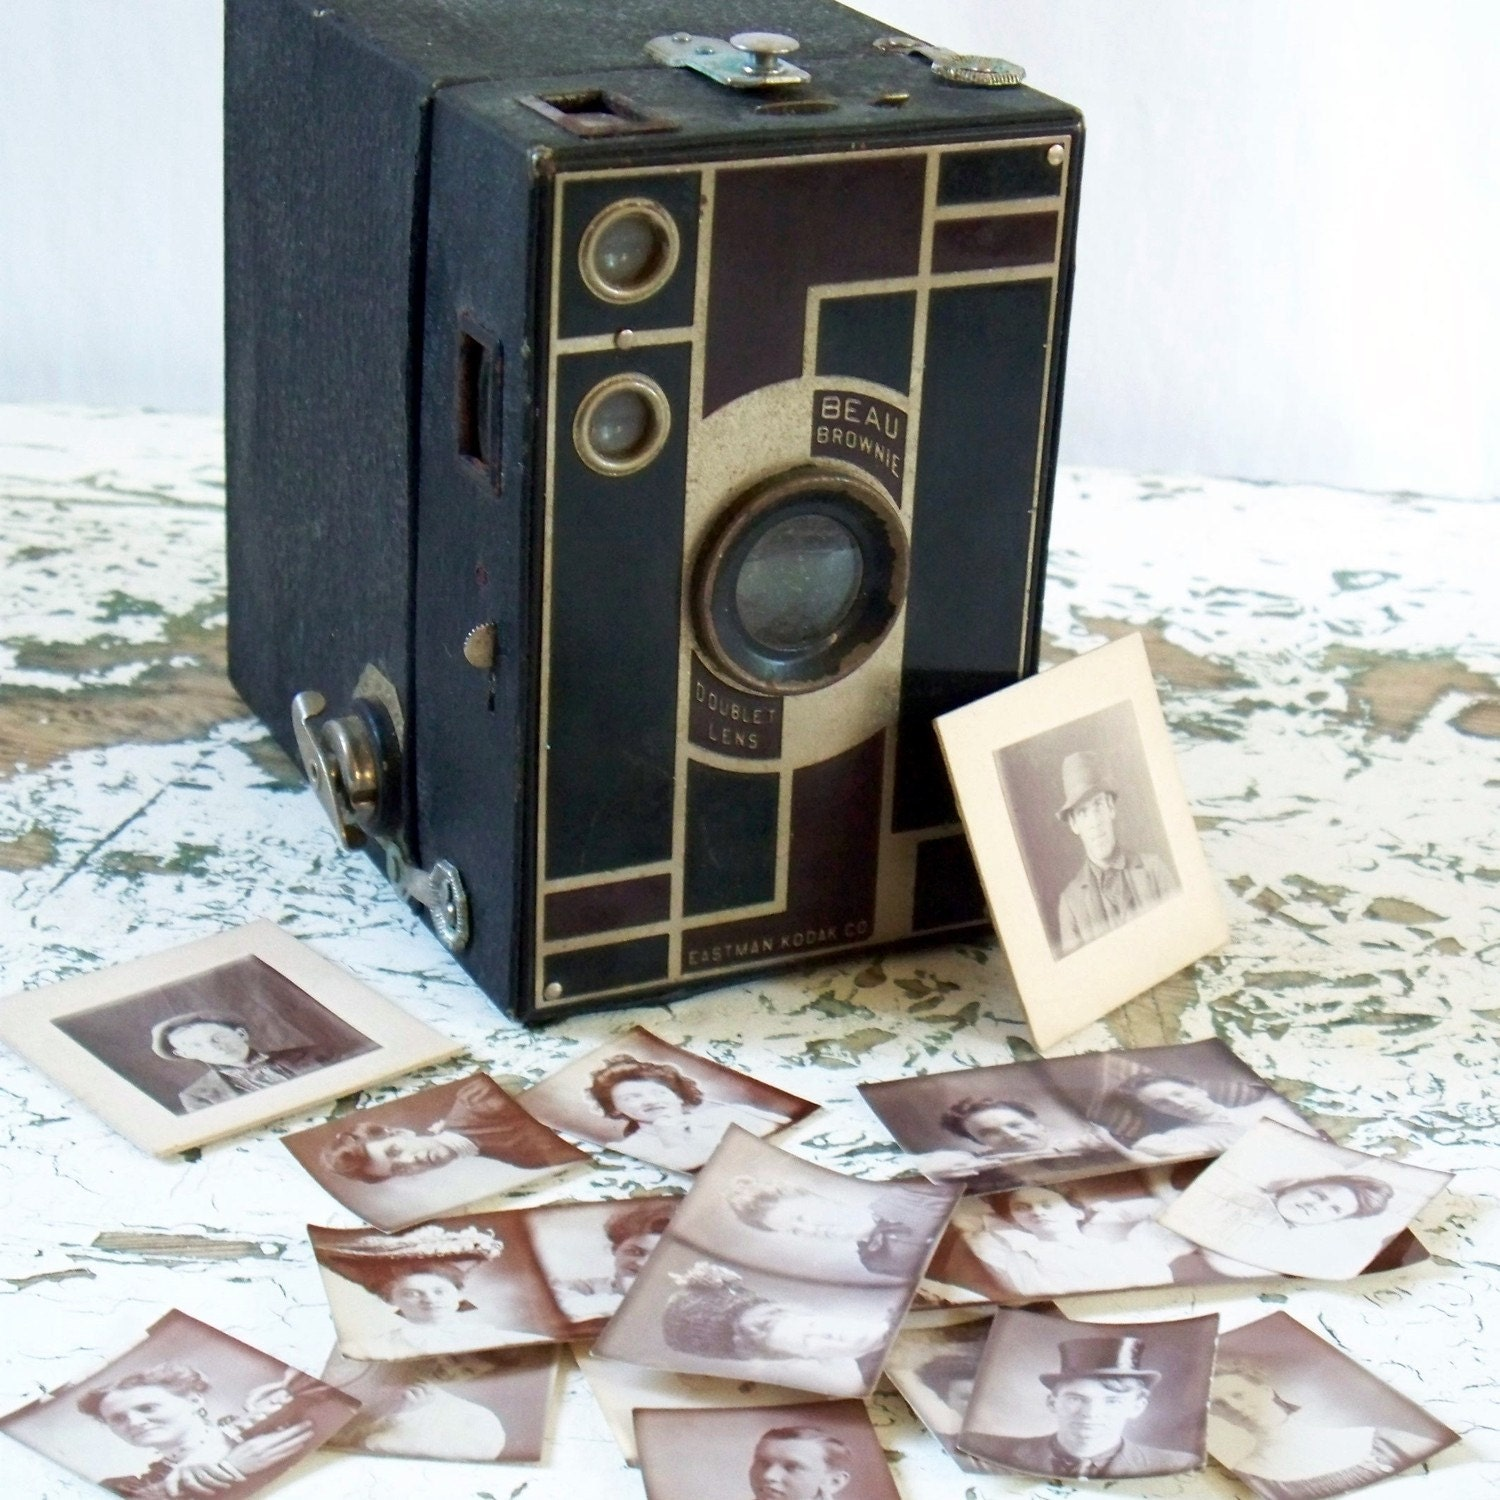 Vintage Beau Brownie Box Camera